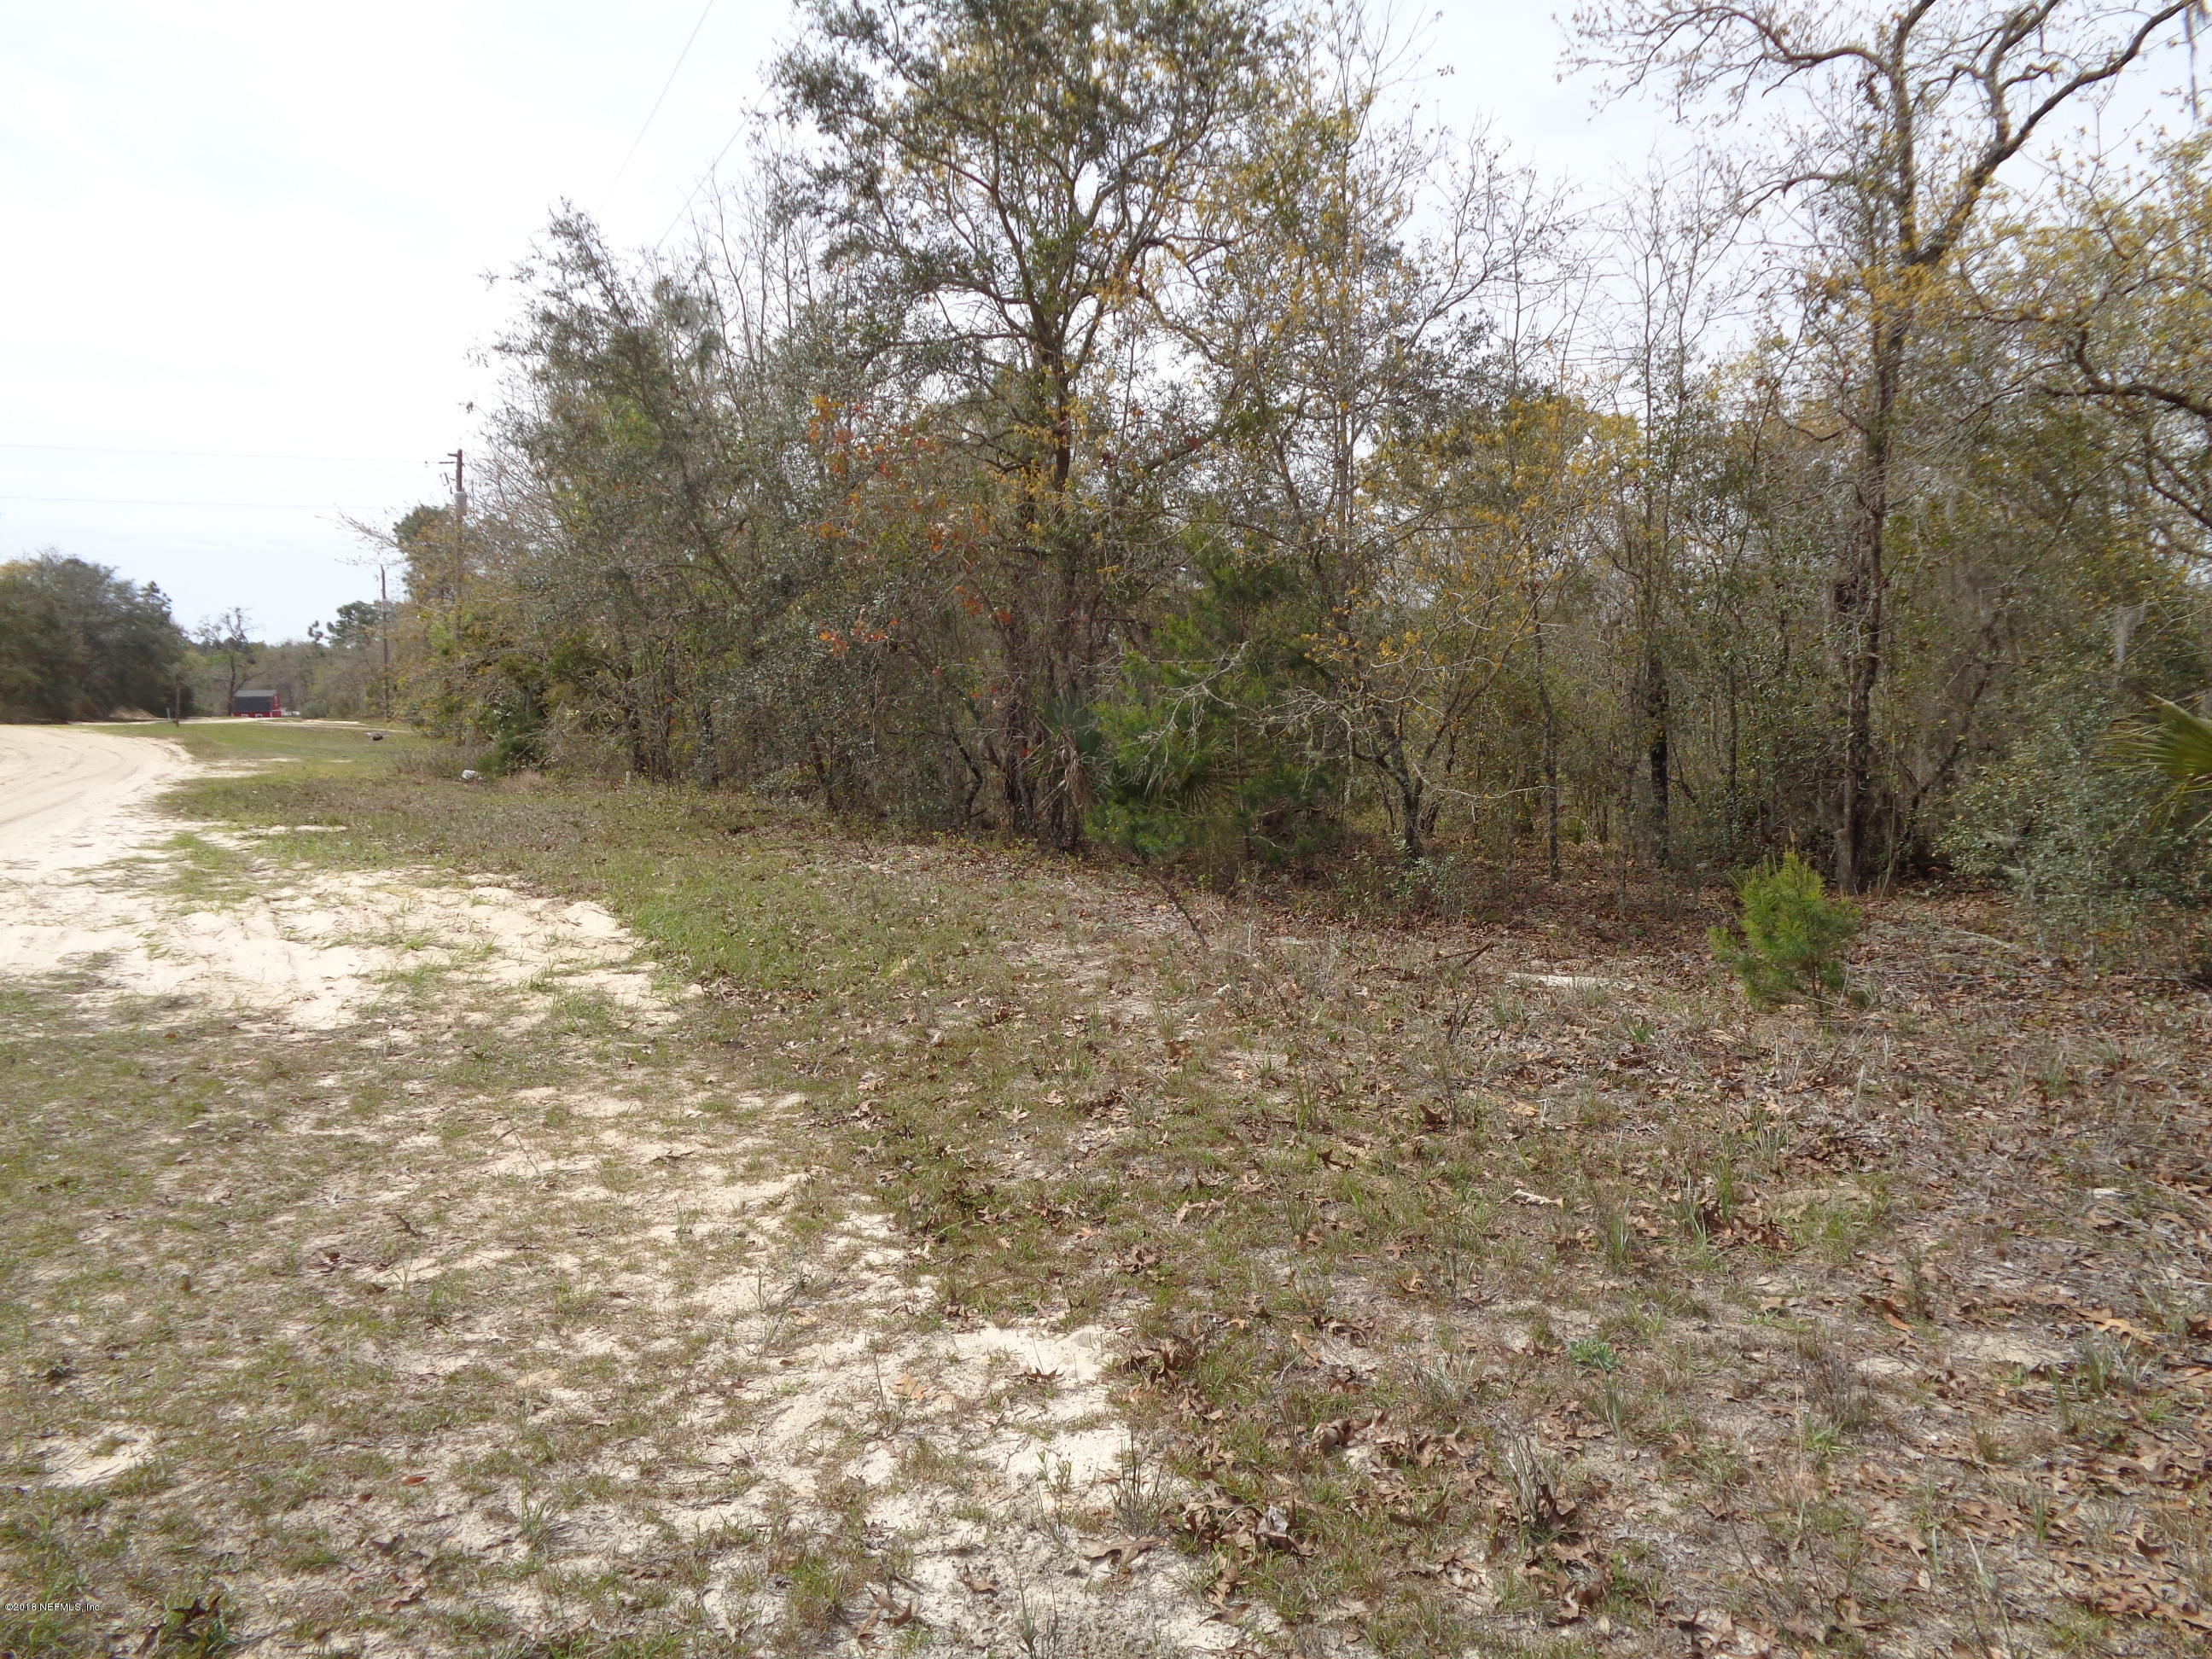 0 LONG BRANCH, INTERLACHEN, FLORIDA 32148, ,Vacant land,For sale,LONG BRANCH,1003412